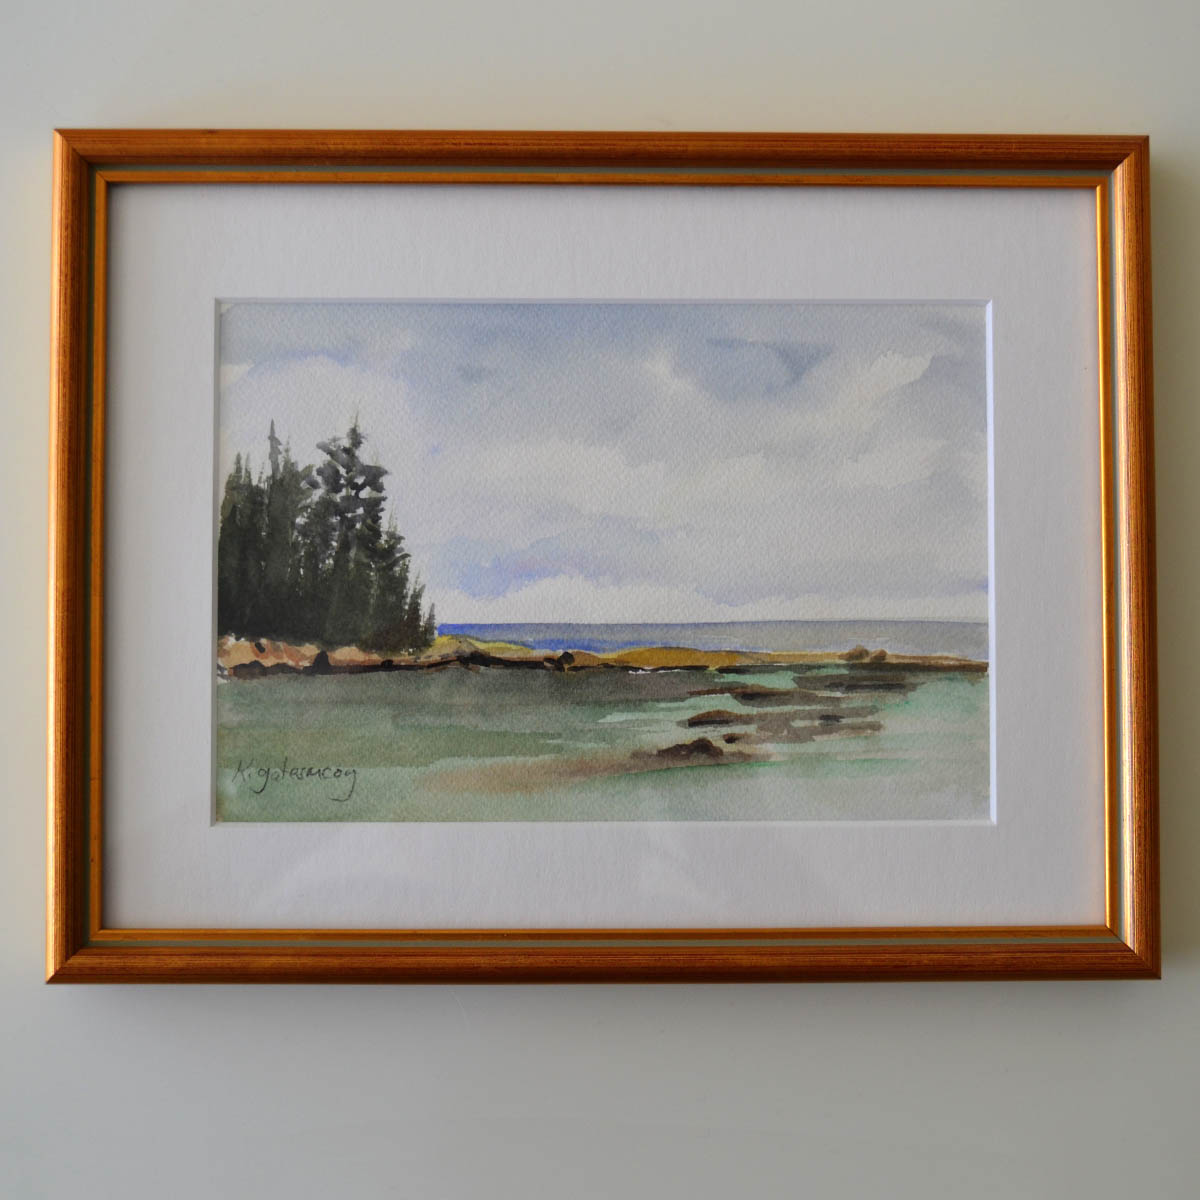 Framed Watercolor - Artist and Neighborhood House Board member Kathe Gates McCoy generously provided this original watercolor depicting the tidal waters surrounding our island home. This understated but beautiful piece would be a worthy addition to any home.Value: $200.00